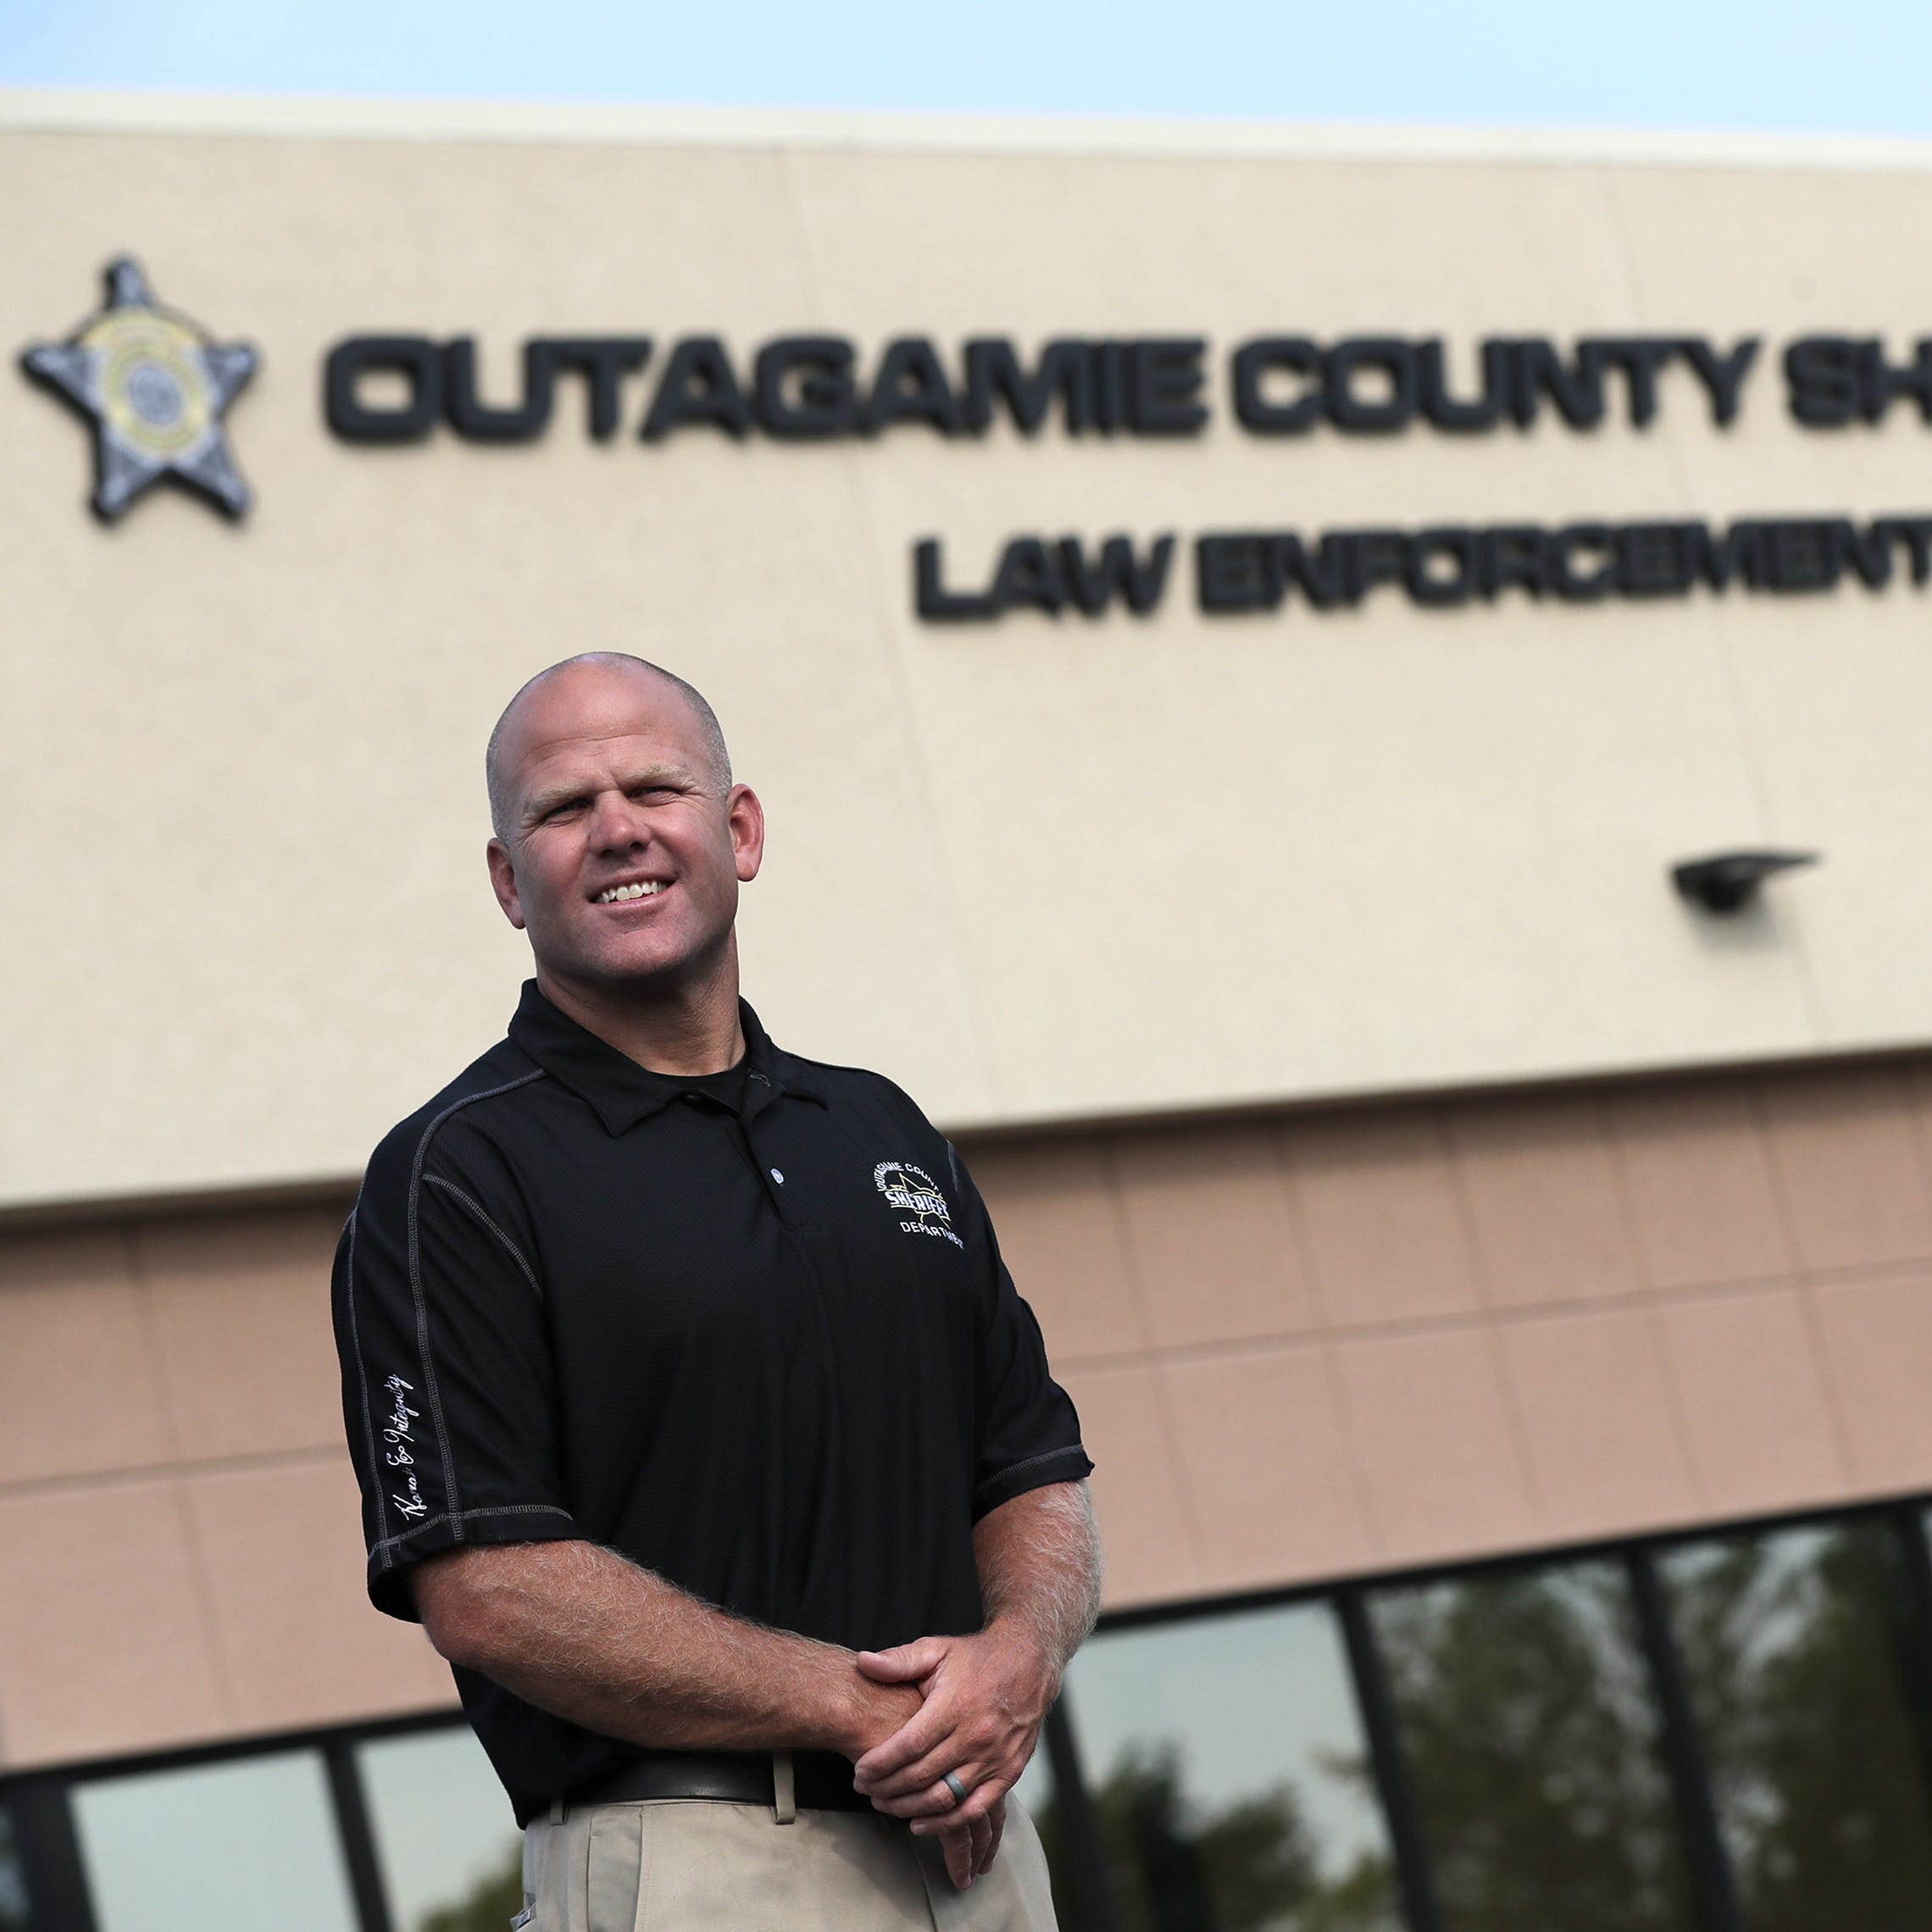 Ex-NFL player Clint Kriewaldt to take team approach to Outagamie County sheriff job